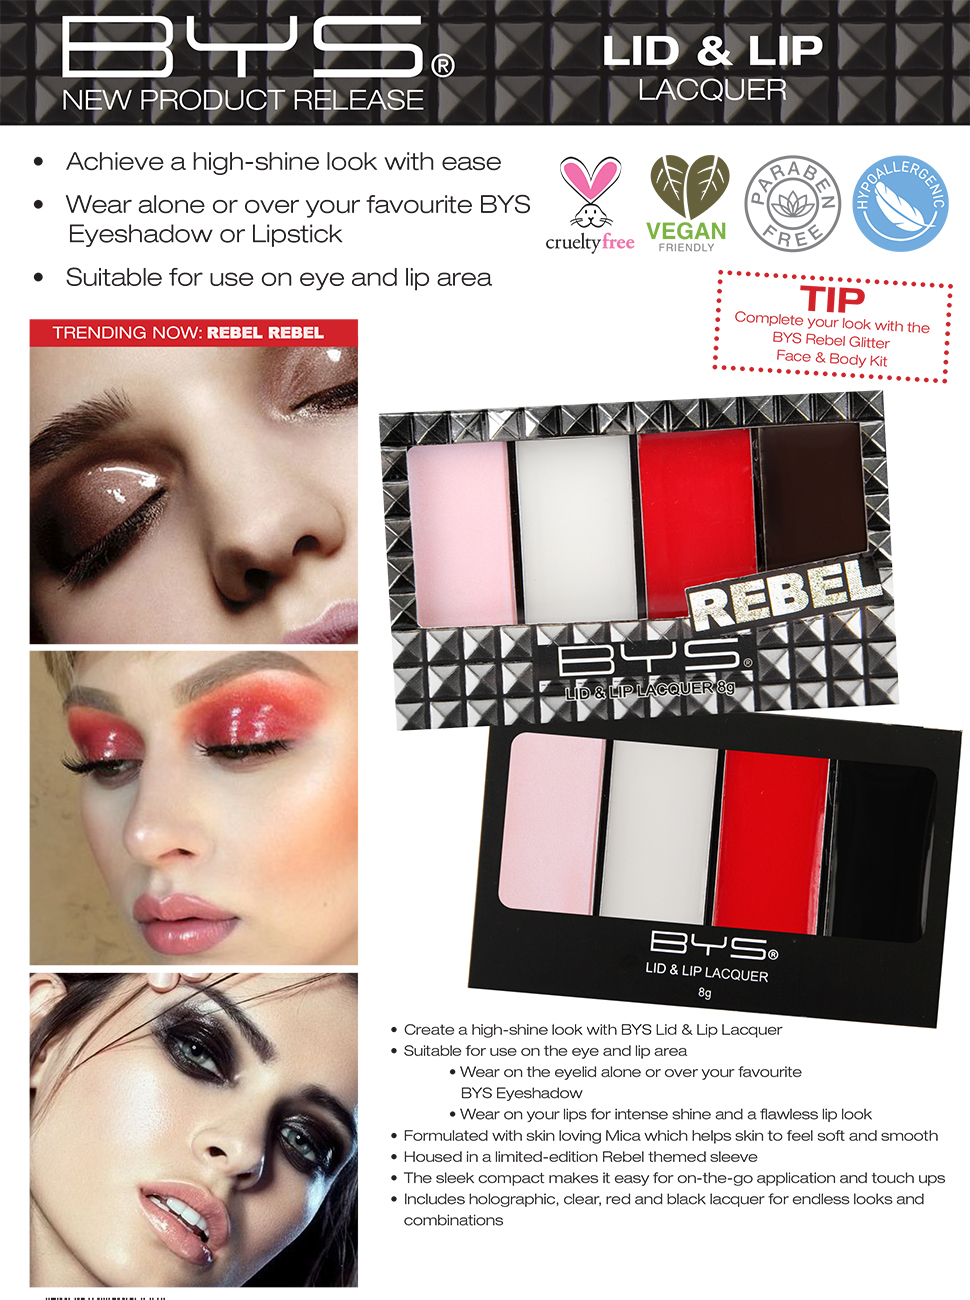 Lid and Lip Lacquer - ultra shine look wear alone or over Eyeshadow or Lipstick lightweight formula